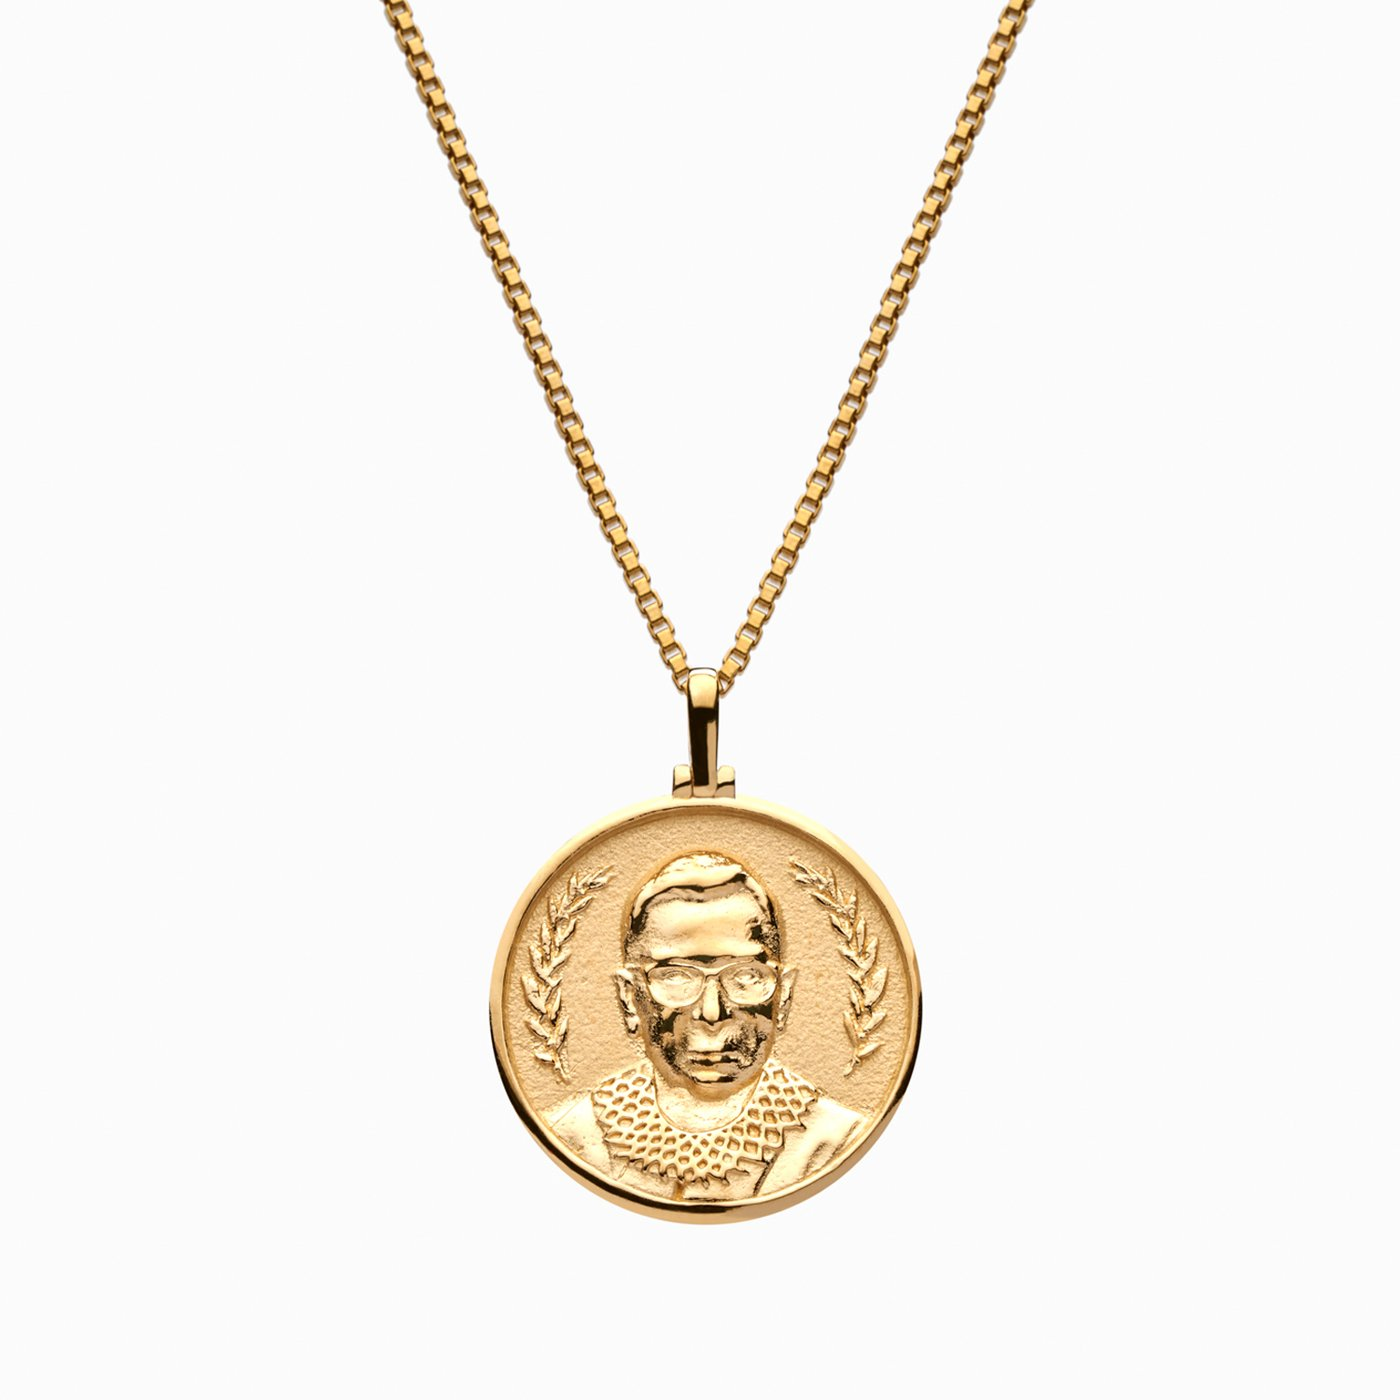 gold coin pendant necklace; RBG necklace